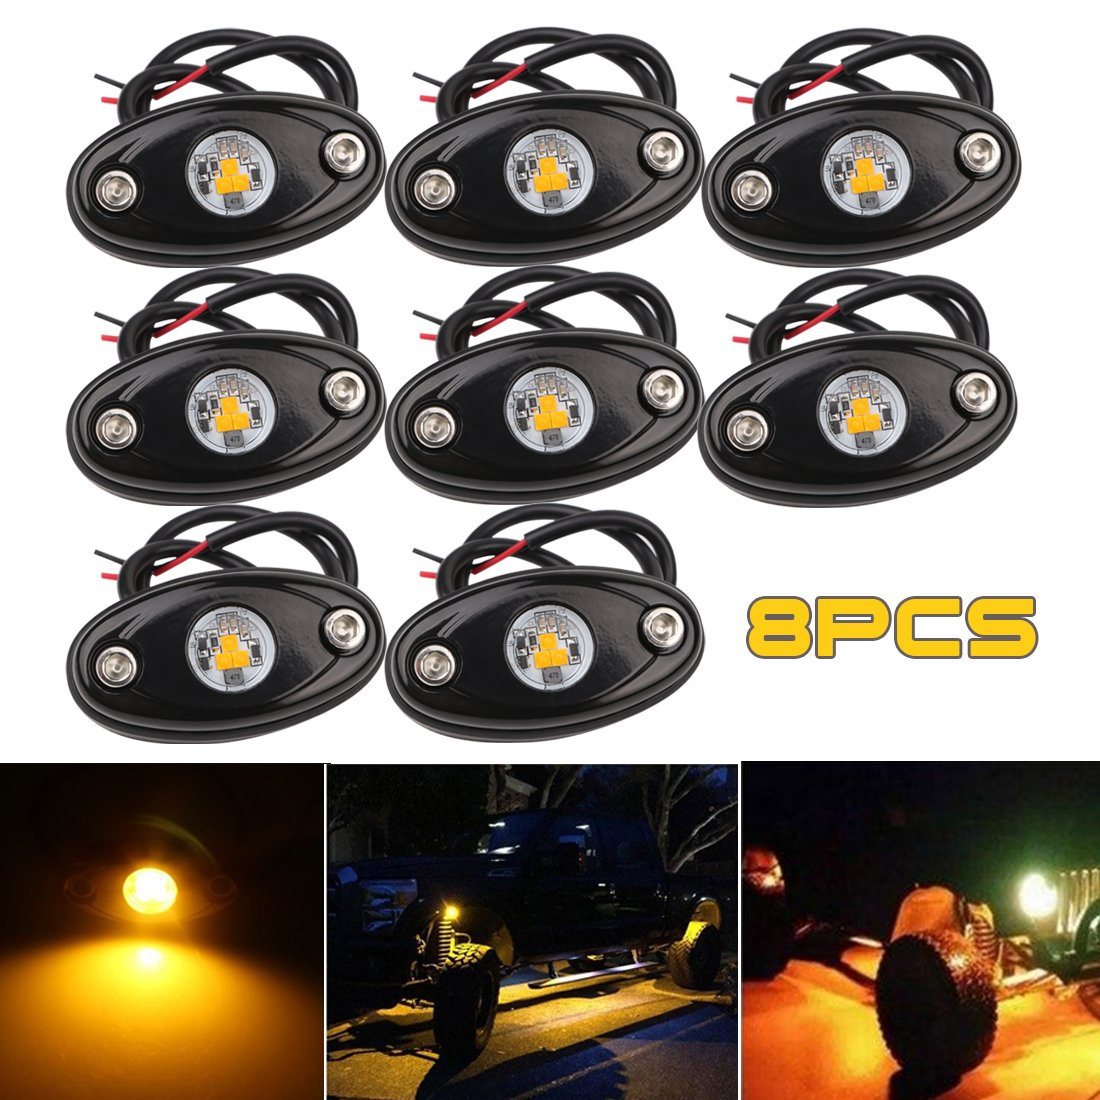 LEDMIRCY LED Rock Lights Yellow Kit 8PCS for JEEP Off Road Truck Car Boat ATV SUV Waterproof High Power Underbody Neon Trail Lights Underglow Lights Interior Exterior Shockproof(8PCS-Yellow)